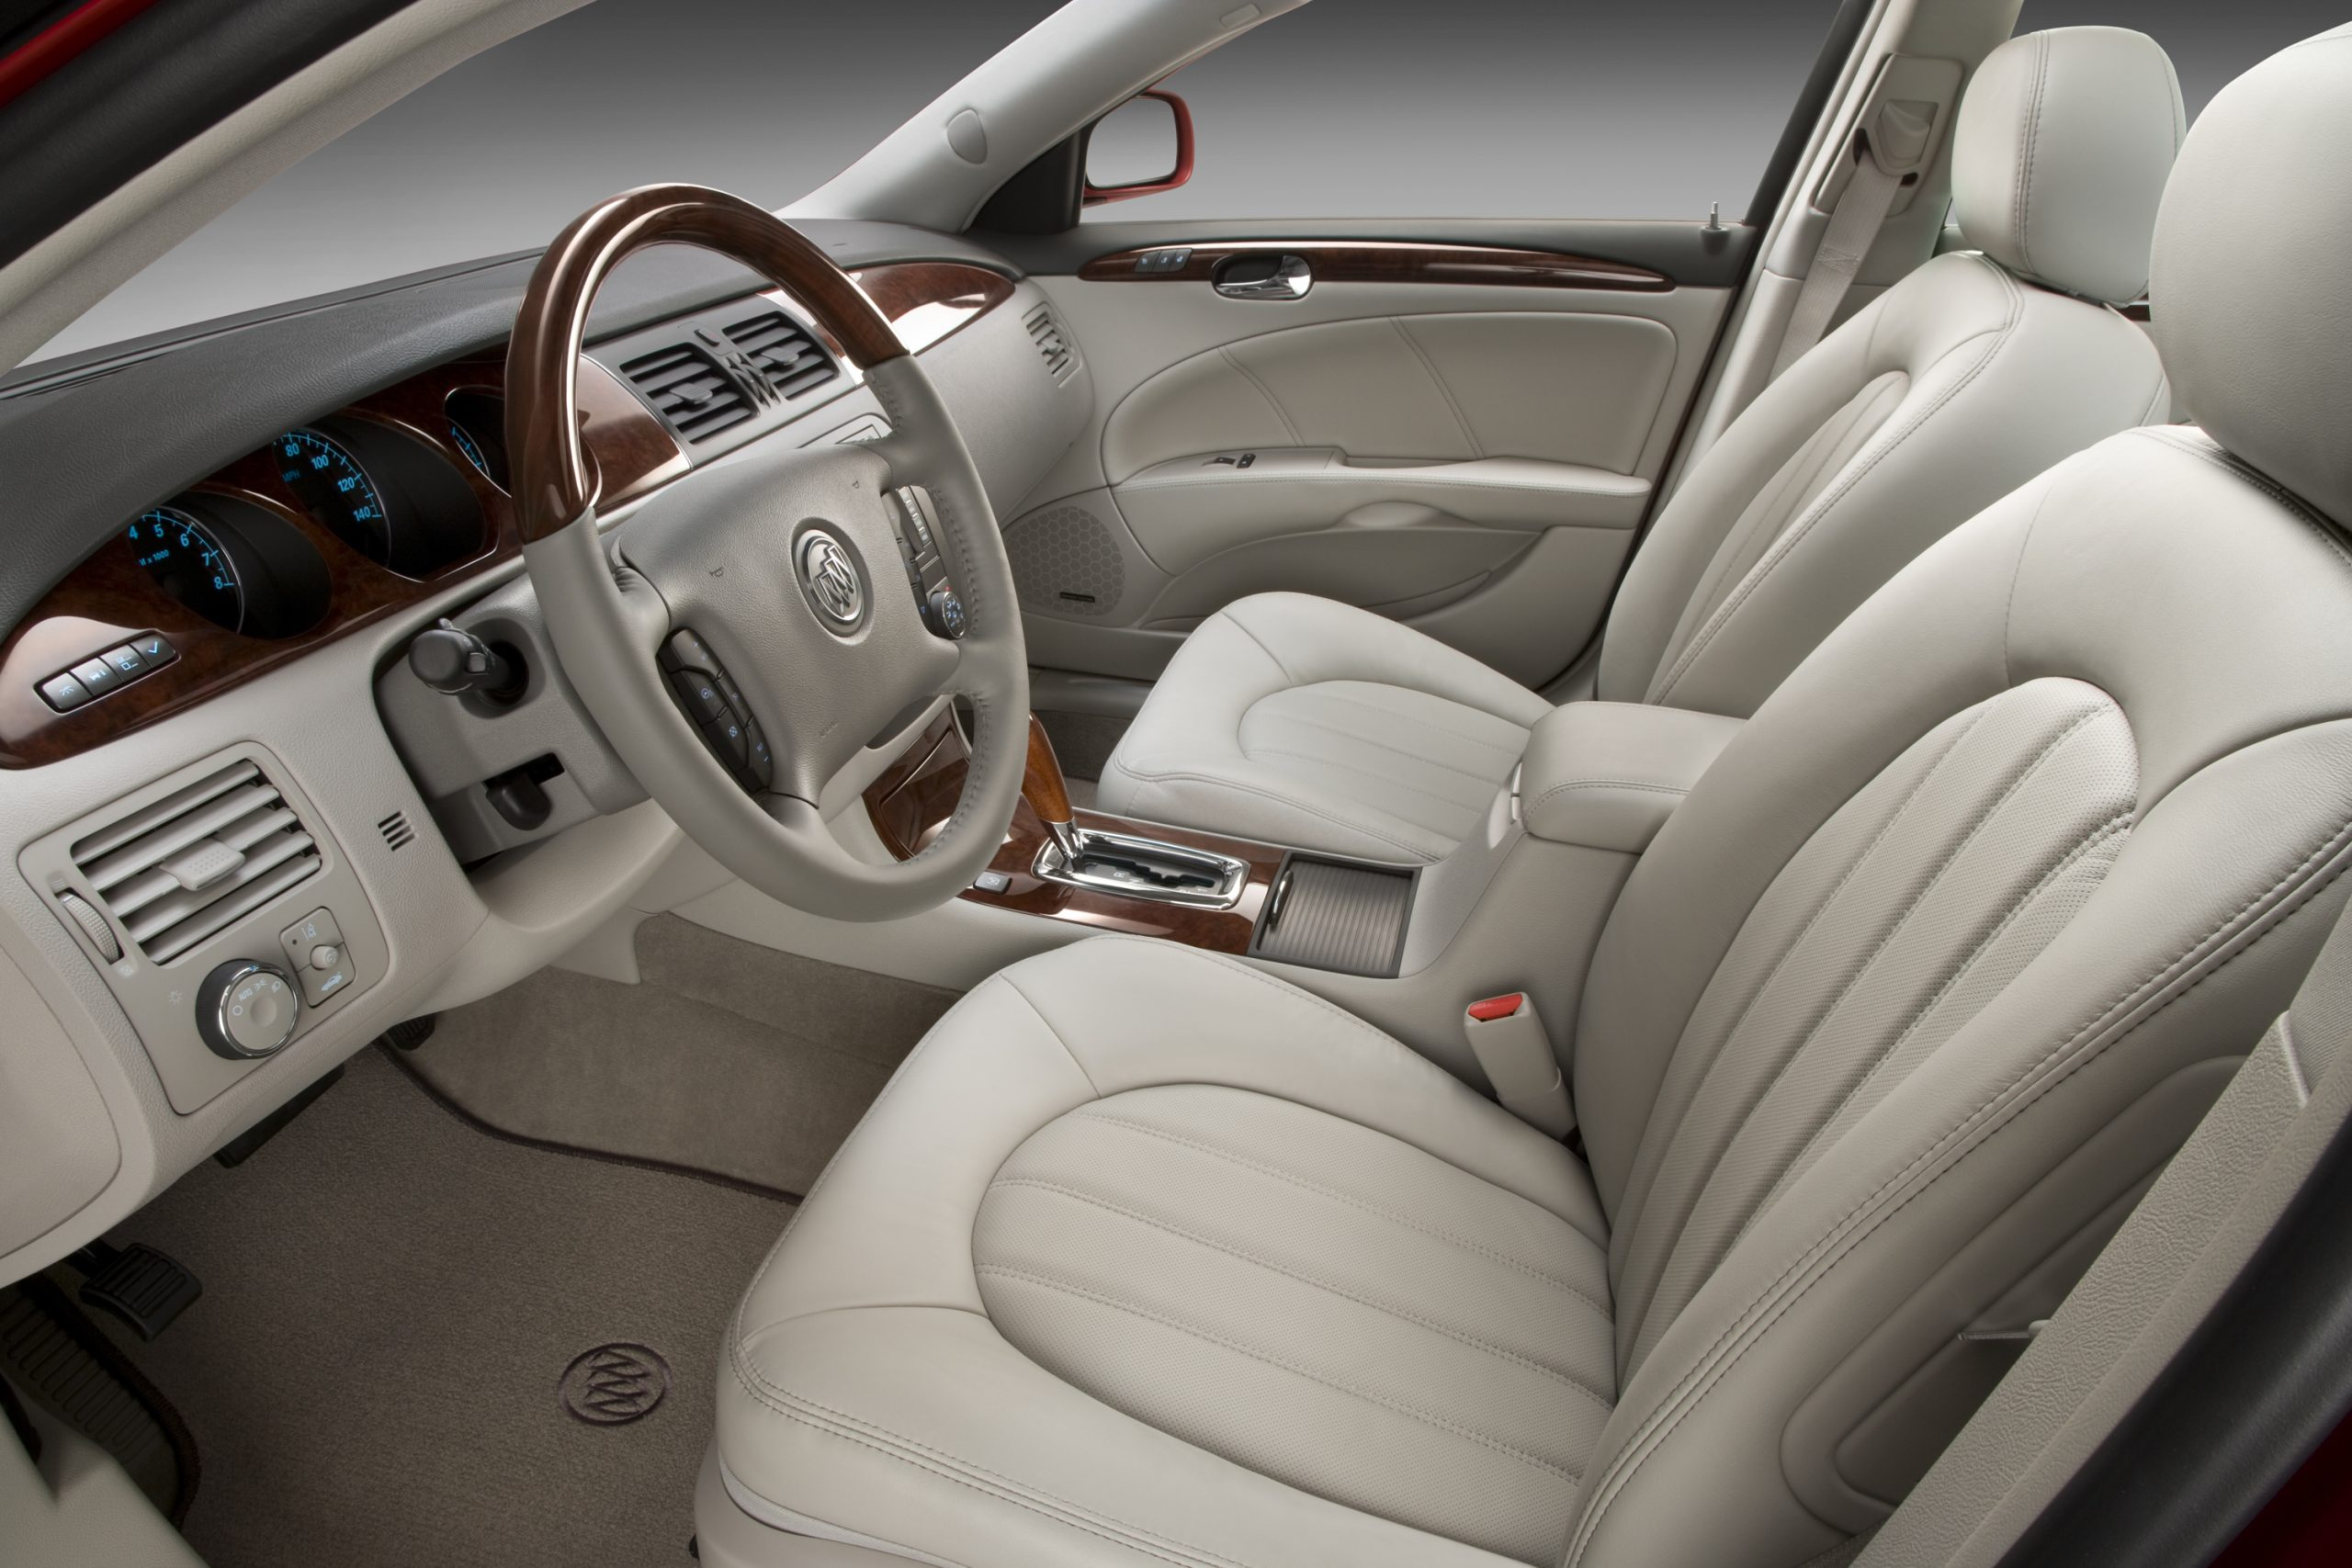 Are You Ready To Wave Goodbye To The Buick Lucerne? | Gm 2022 Buick Lucerne Interior, Problems, Review